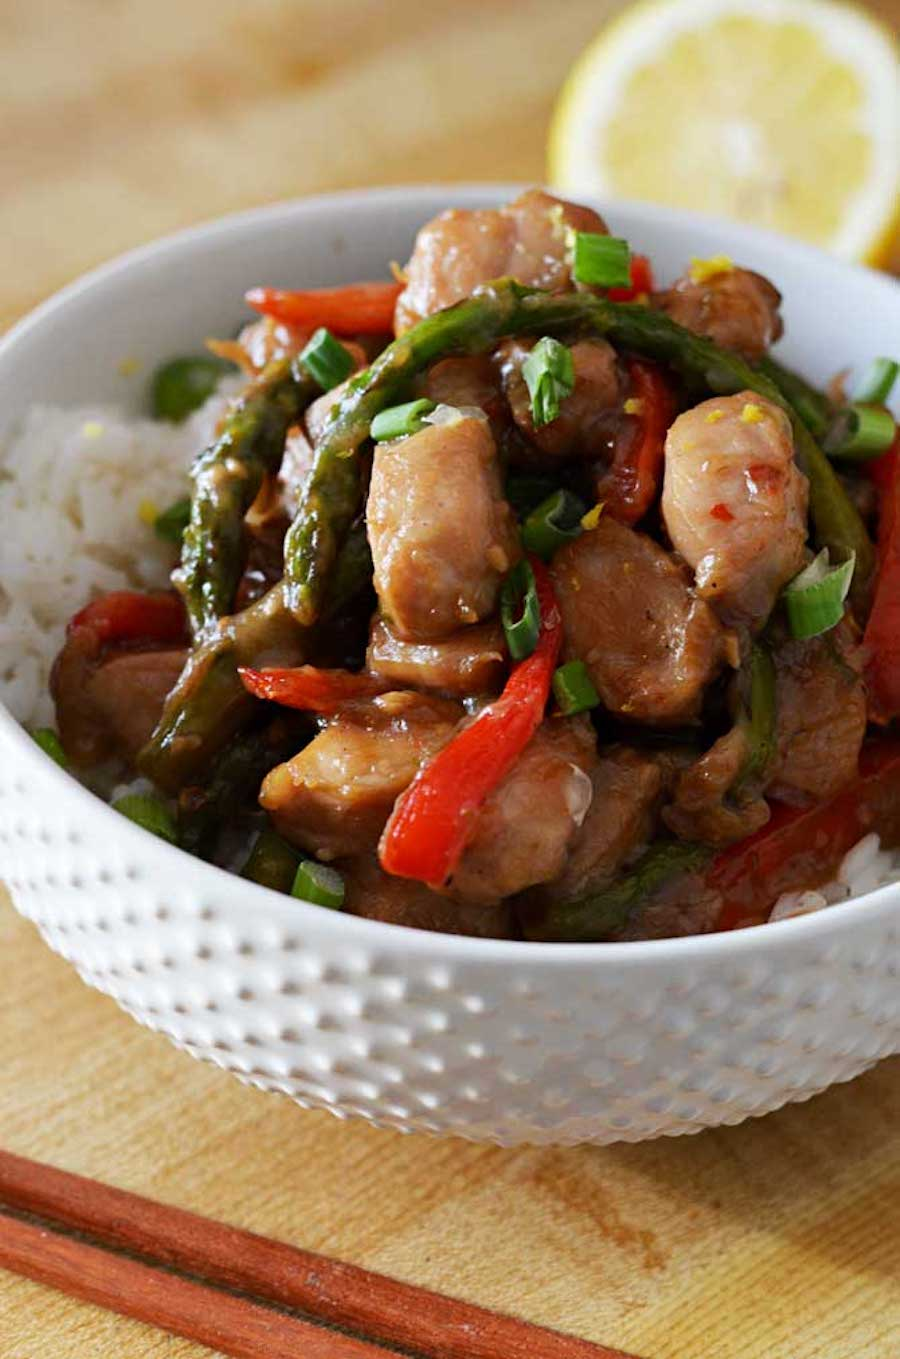 https://hostthetoast.com/garlic-lemon-chicken-stir-fry/